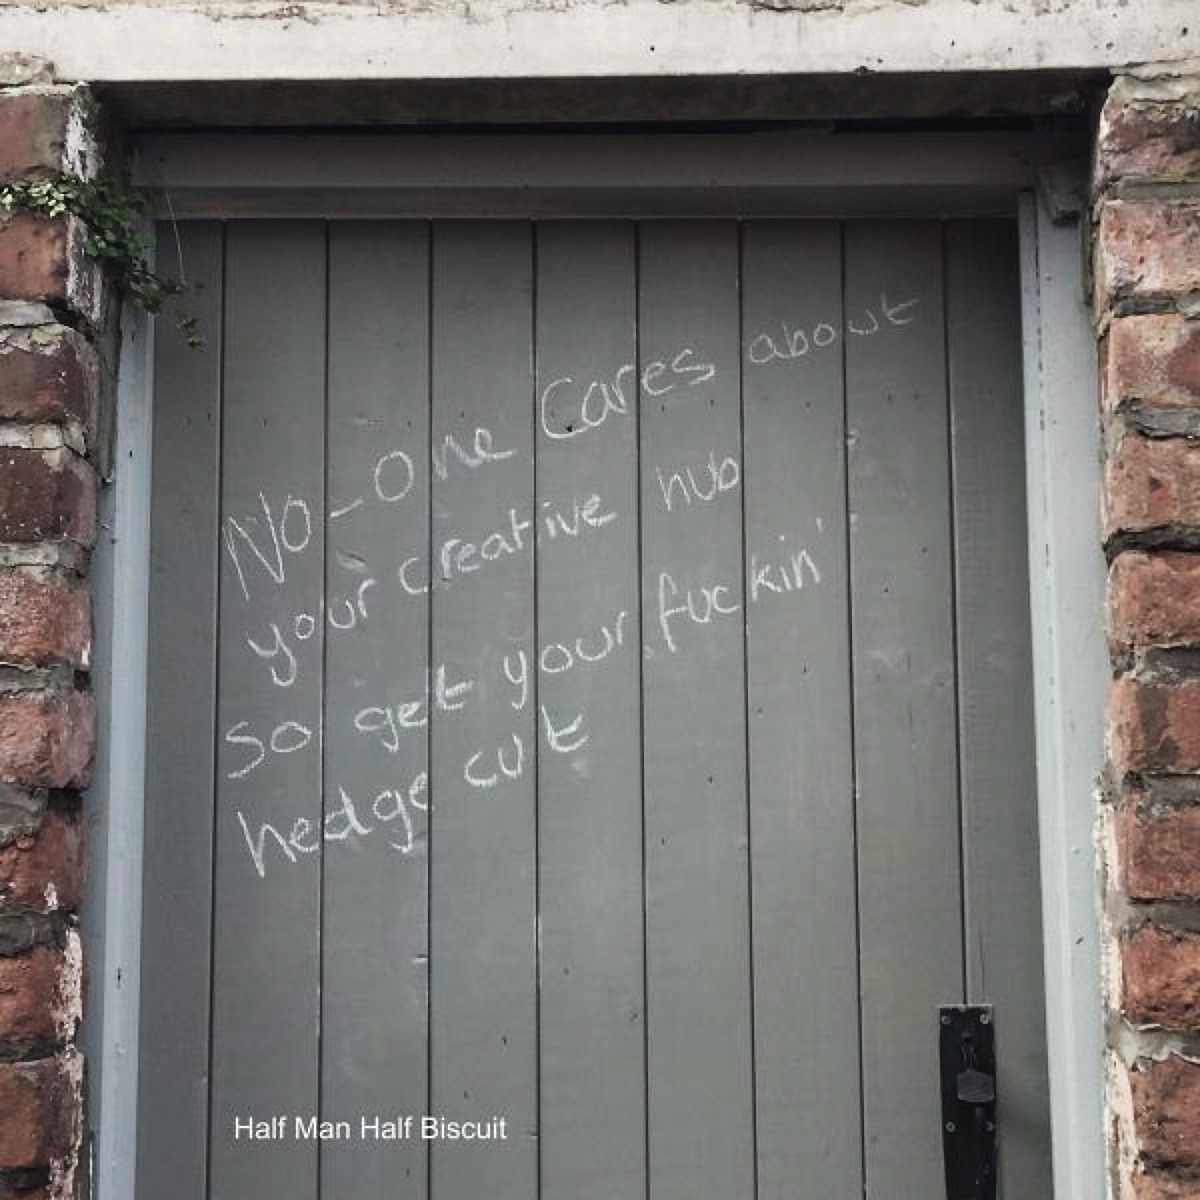 No-one Cares About Your Creative Hub So Get Your Fuckin' Hedge Cut by Half Man Half Biscuit album cover